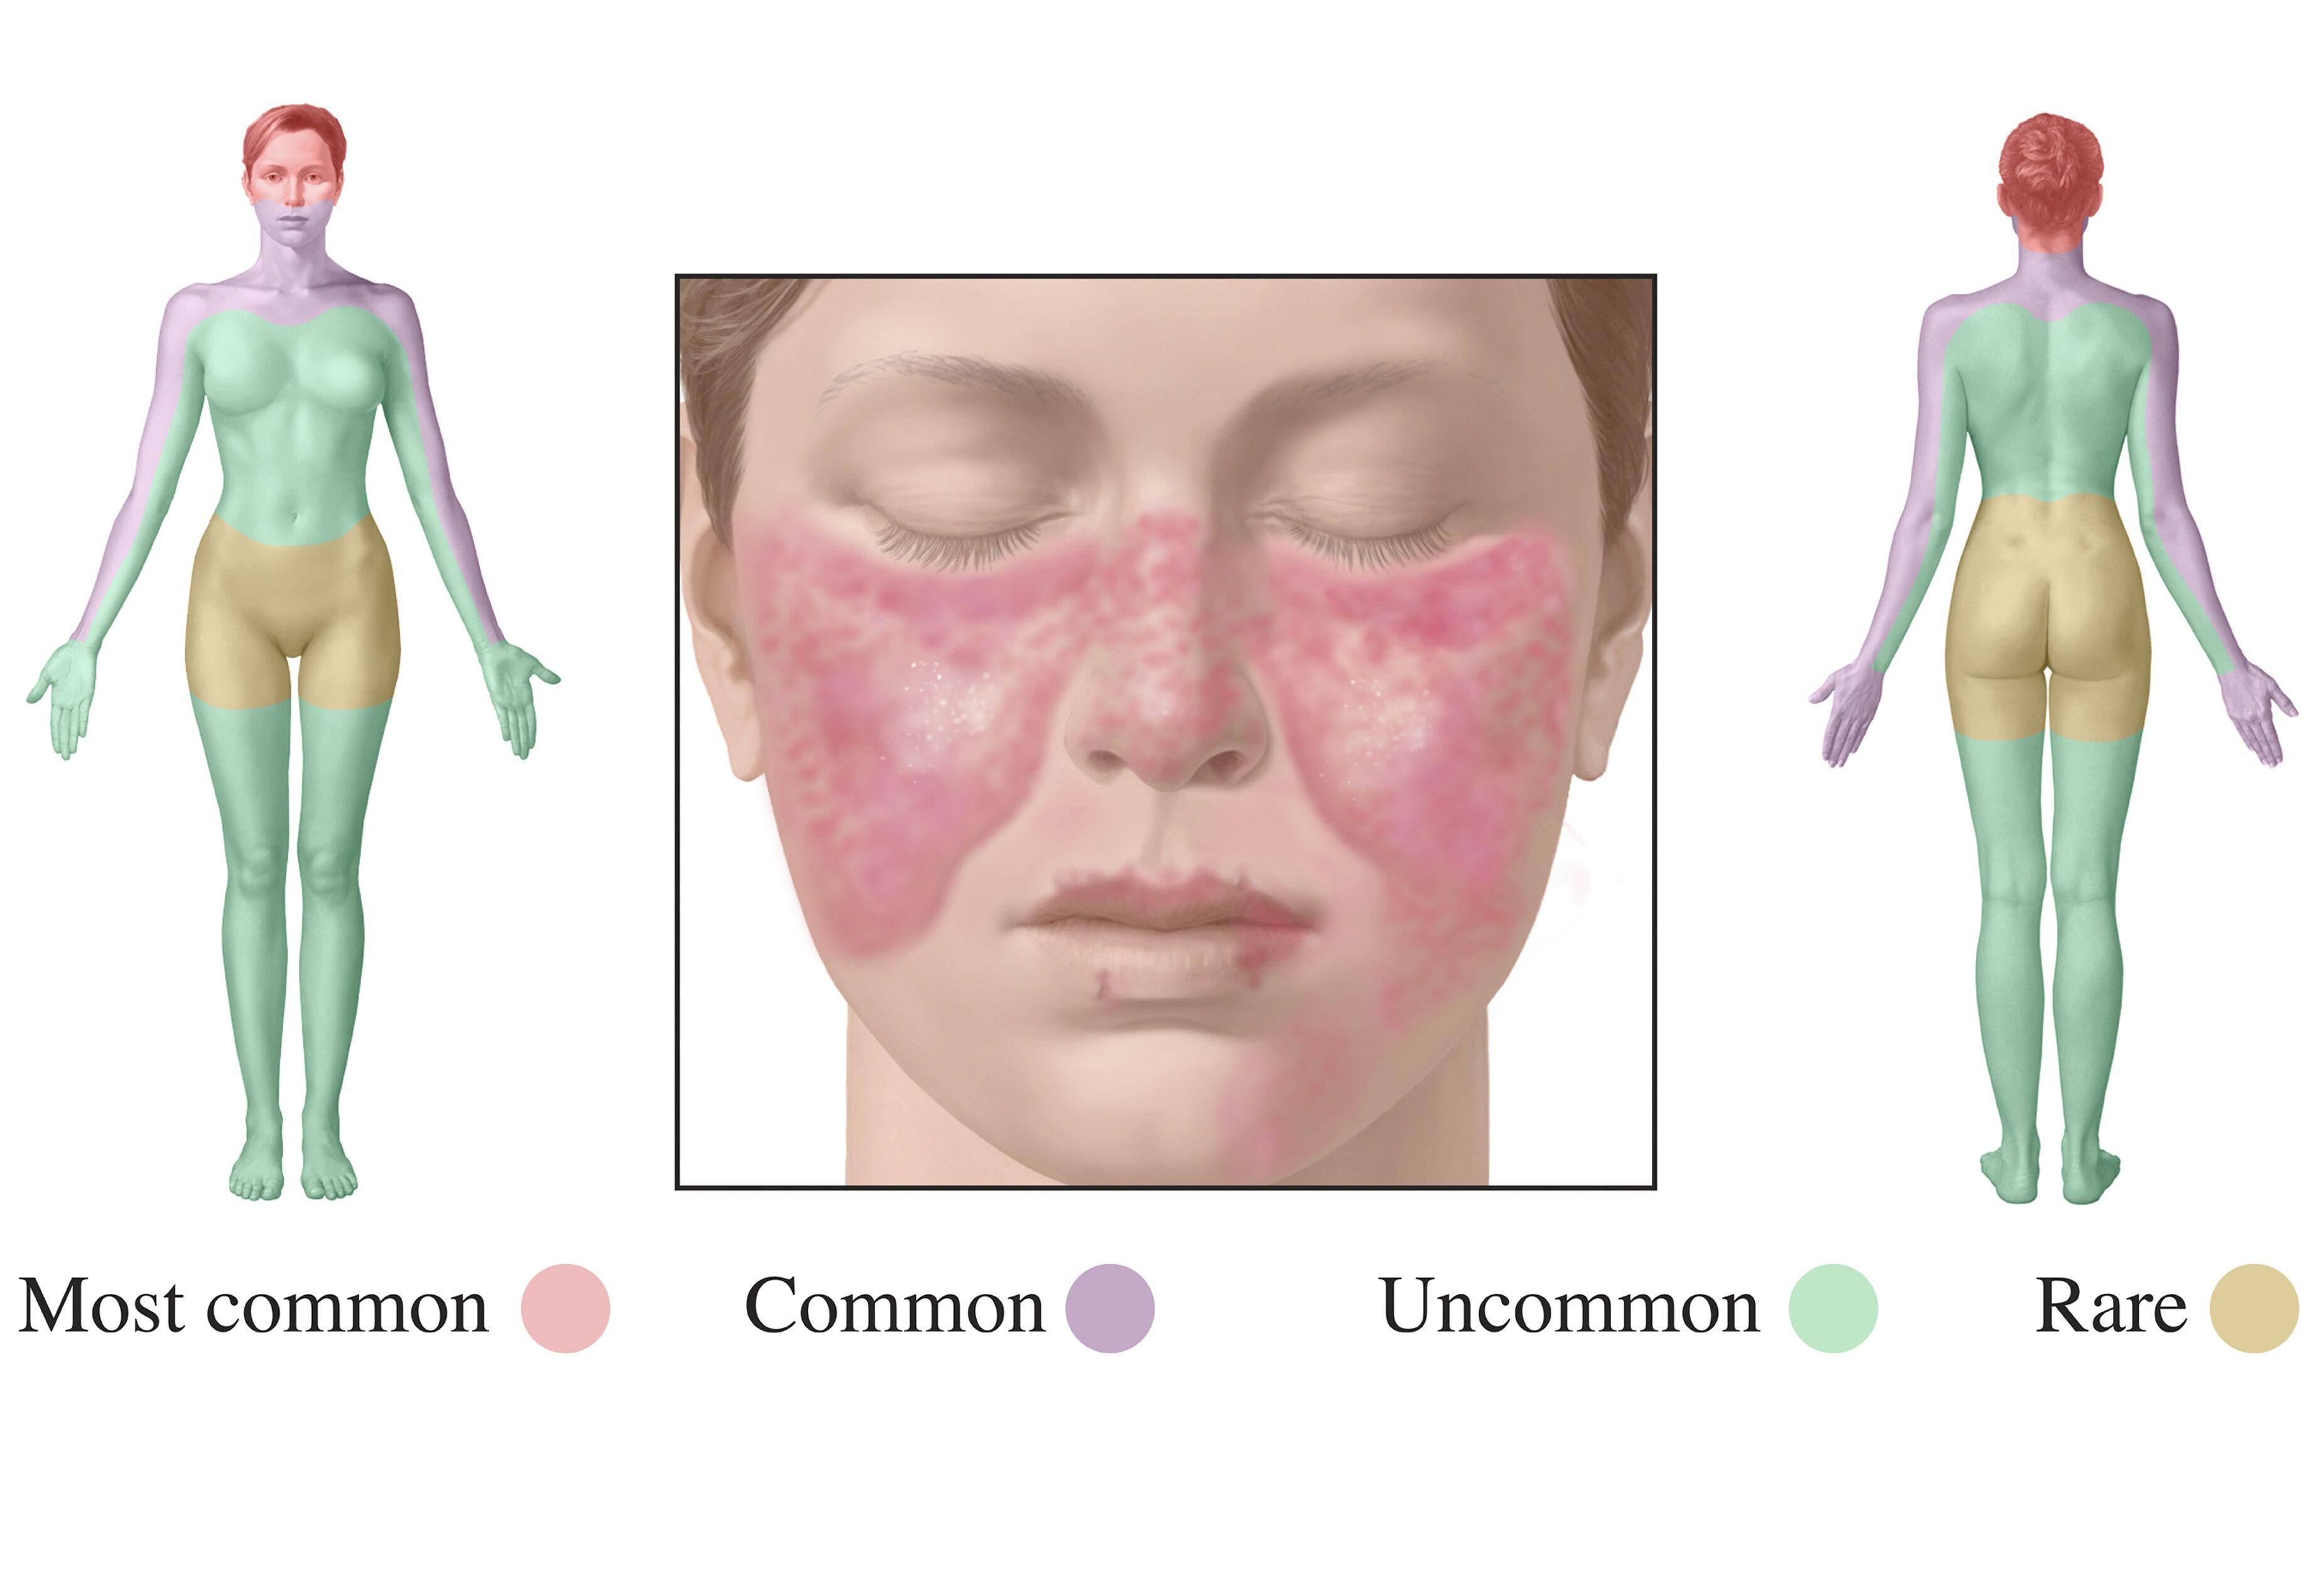 10 CHALLENGES IN TREATING LUPUS: